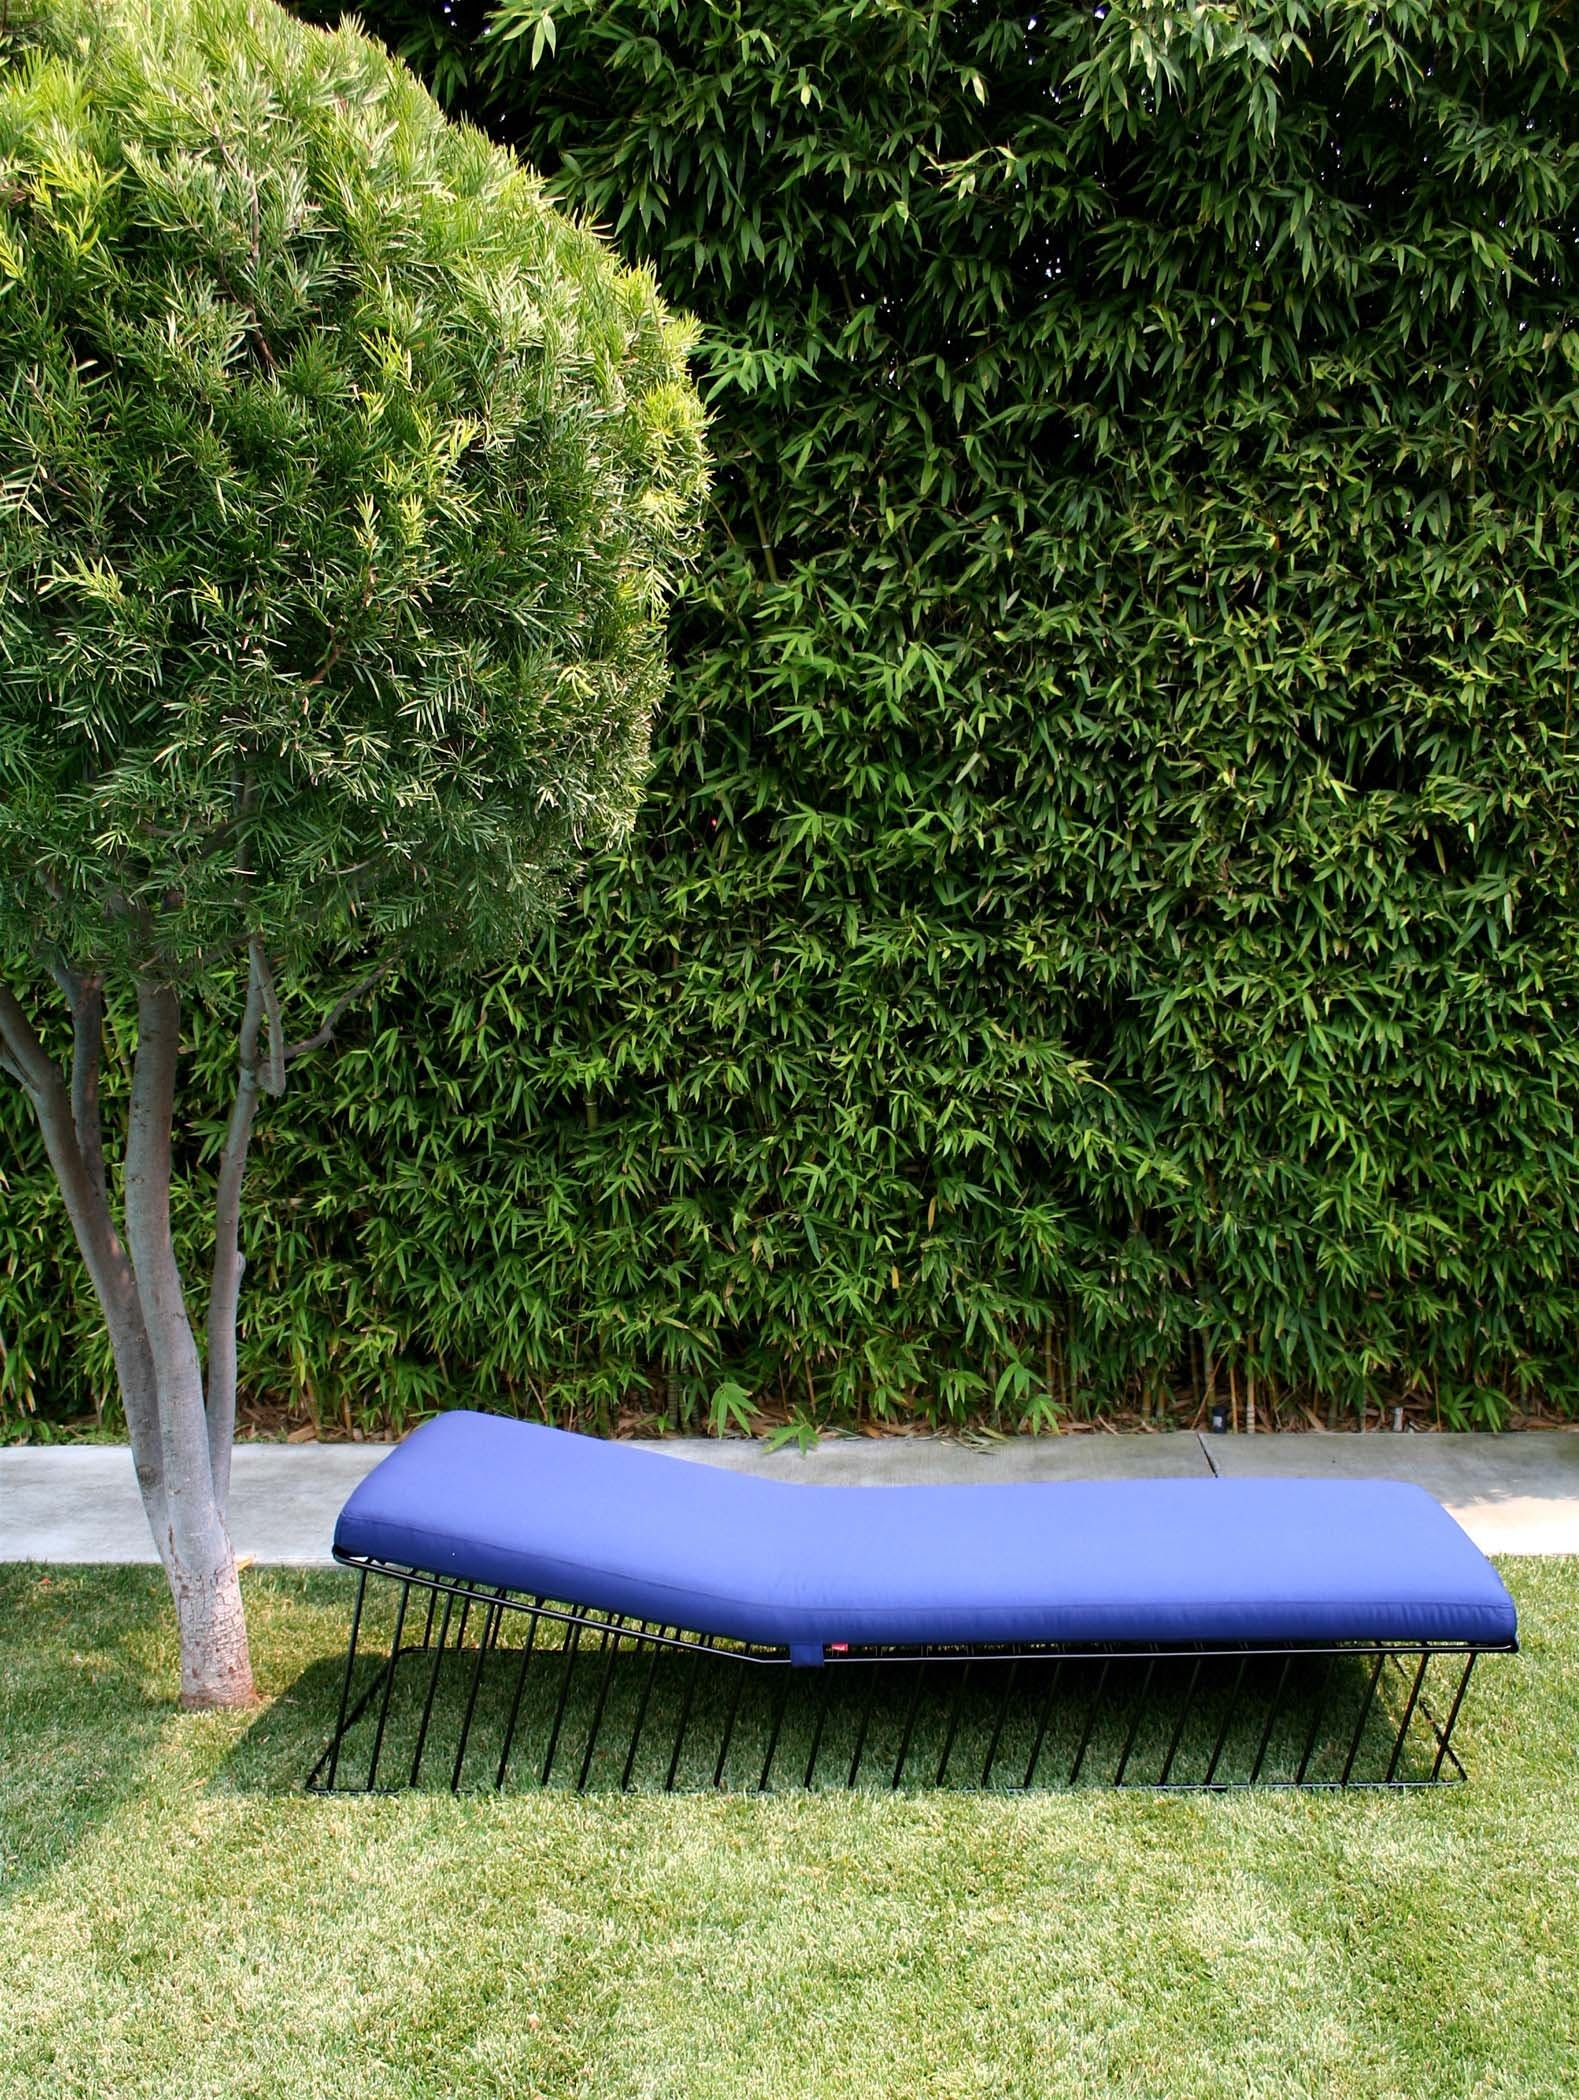 Wired Italic Chaise On Grass